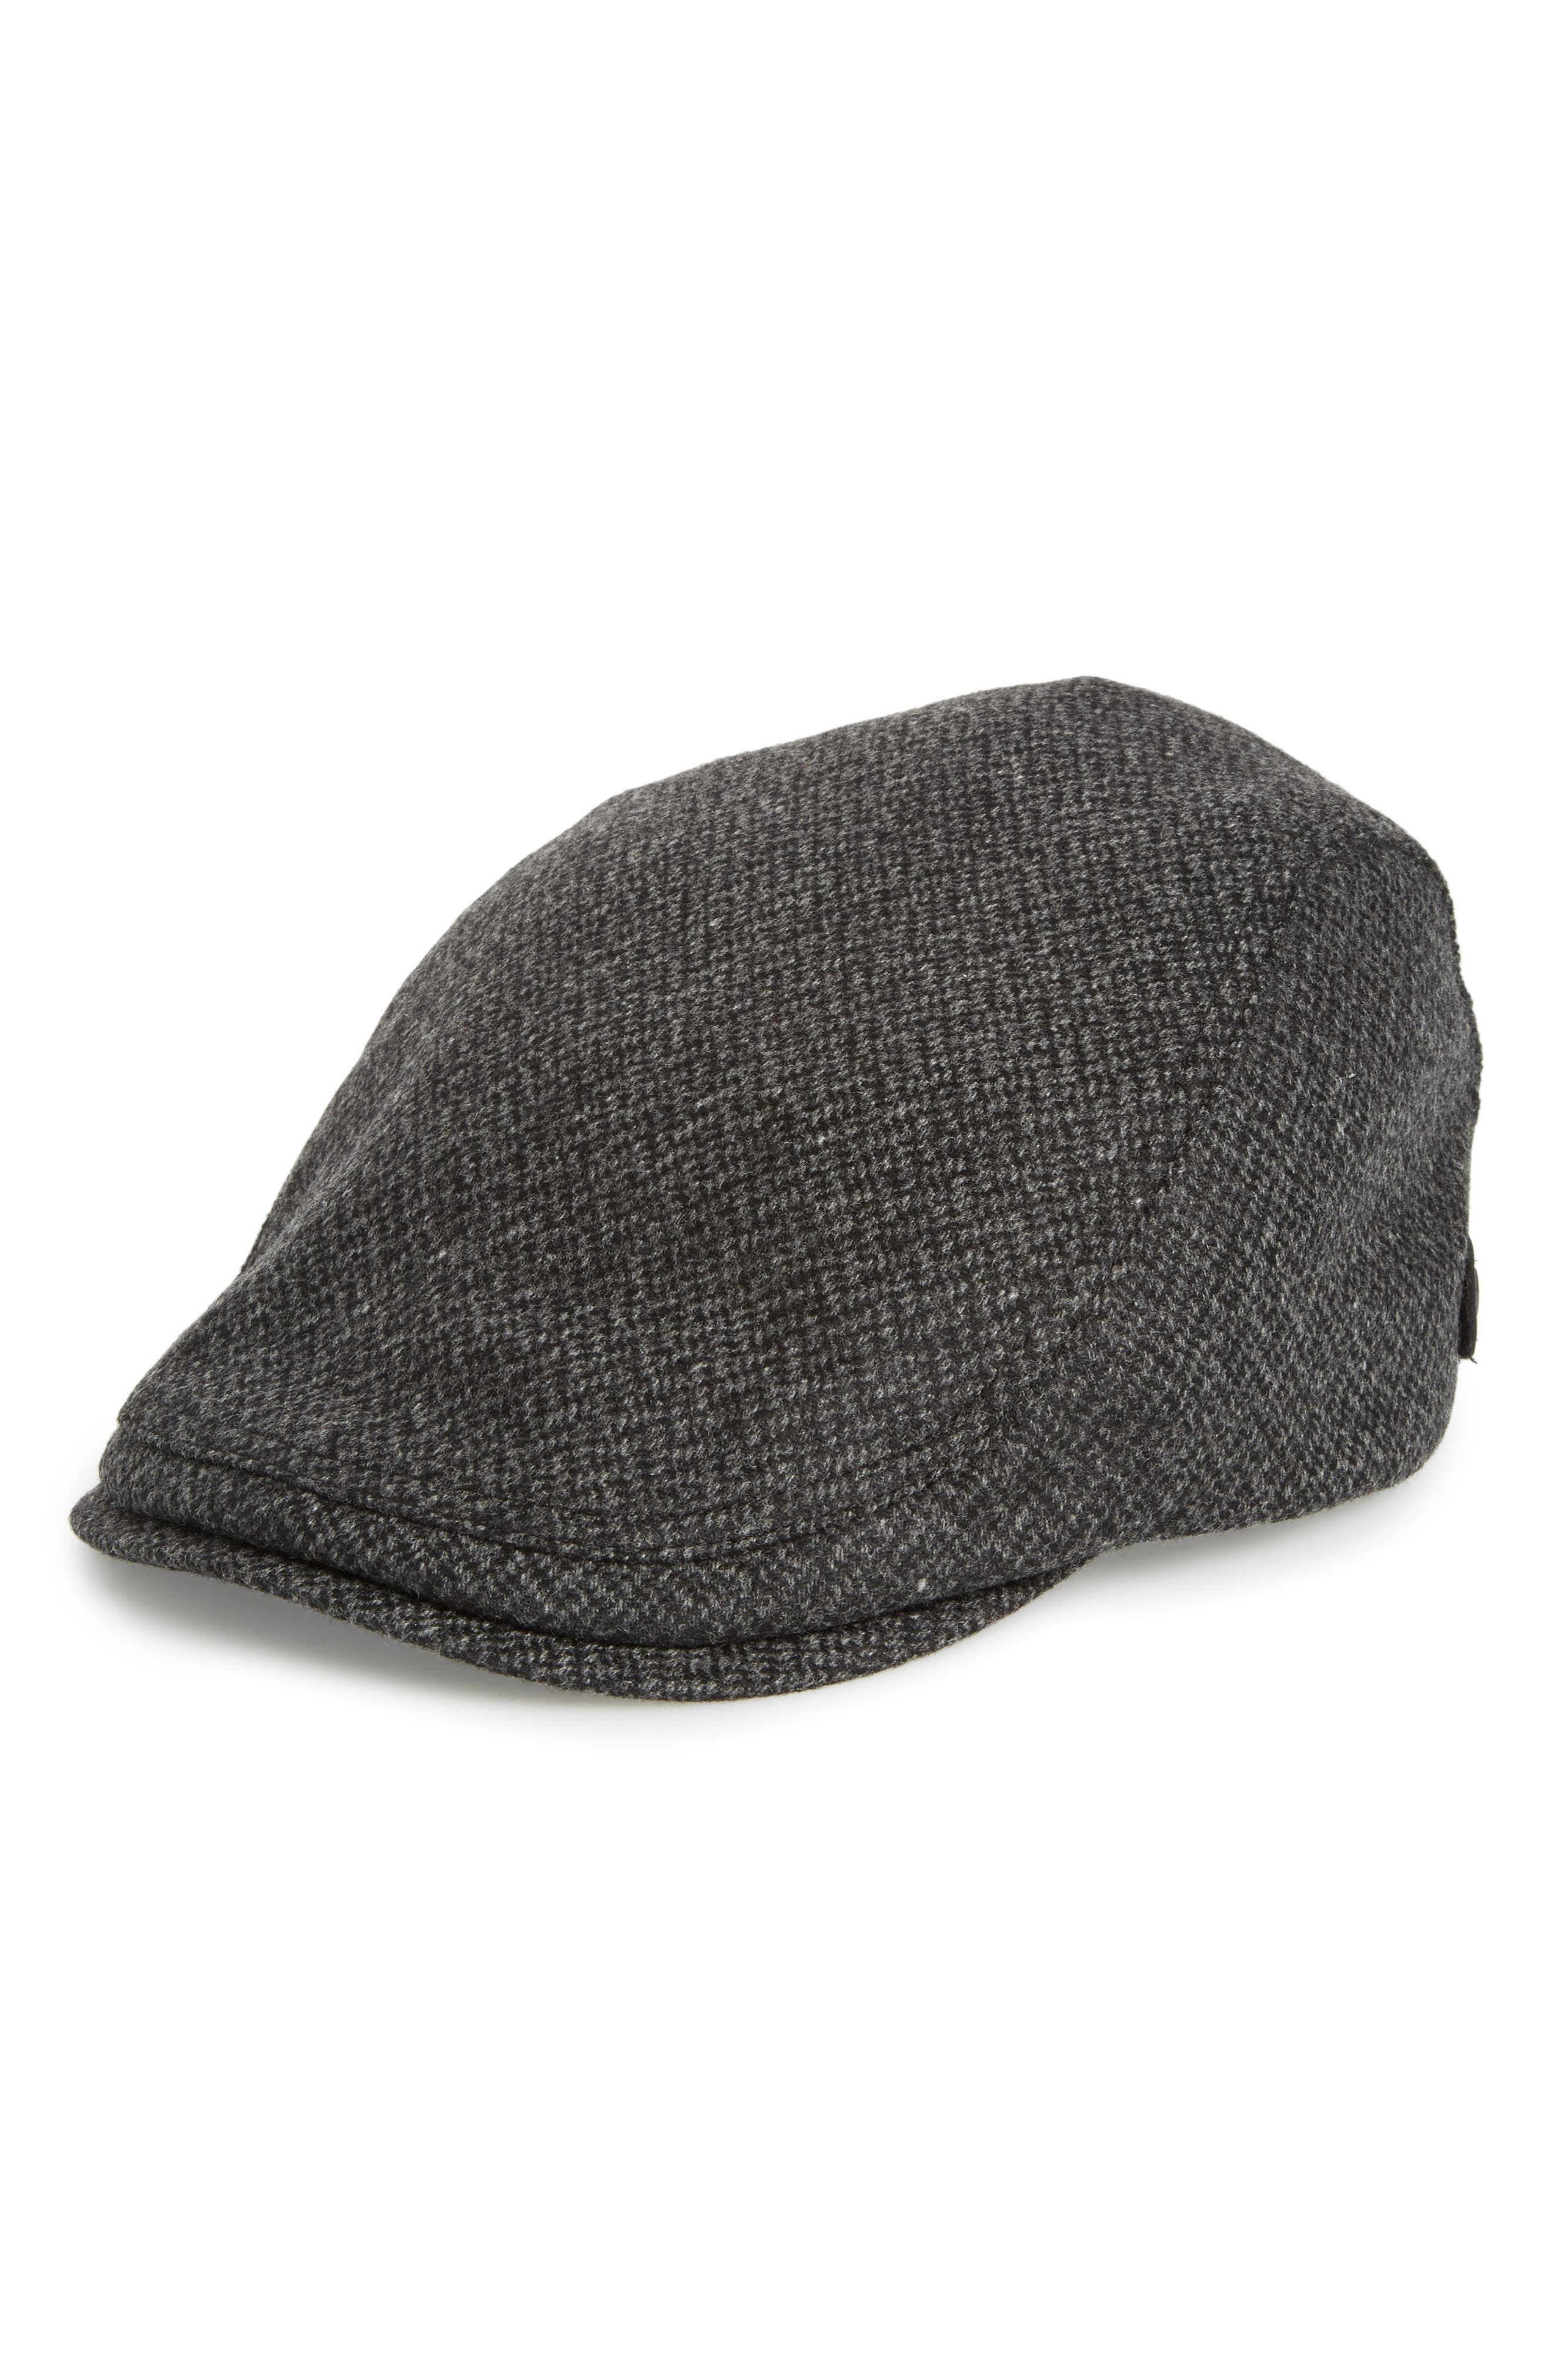 Ted Baker Thompson Wool Blend Flat Driving Cap